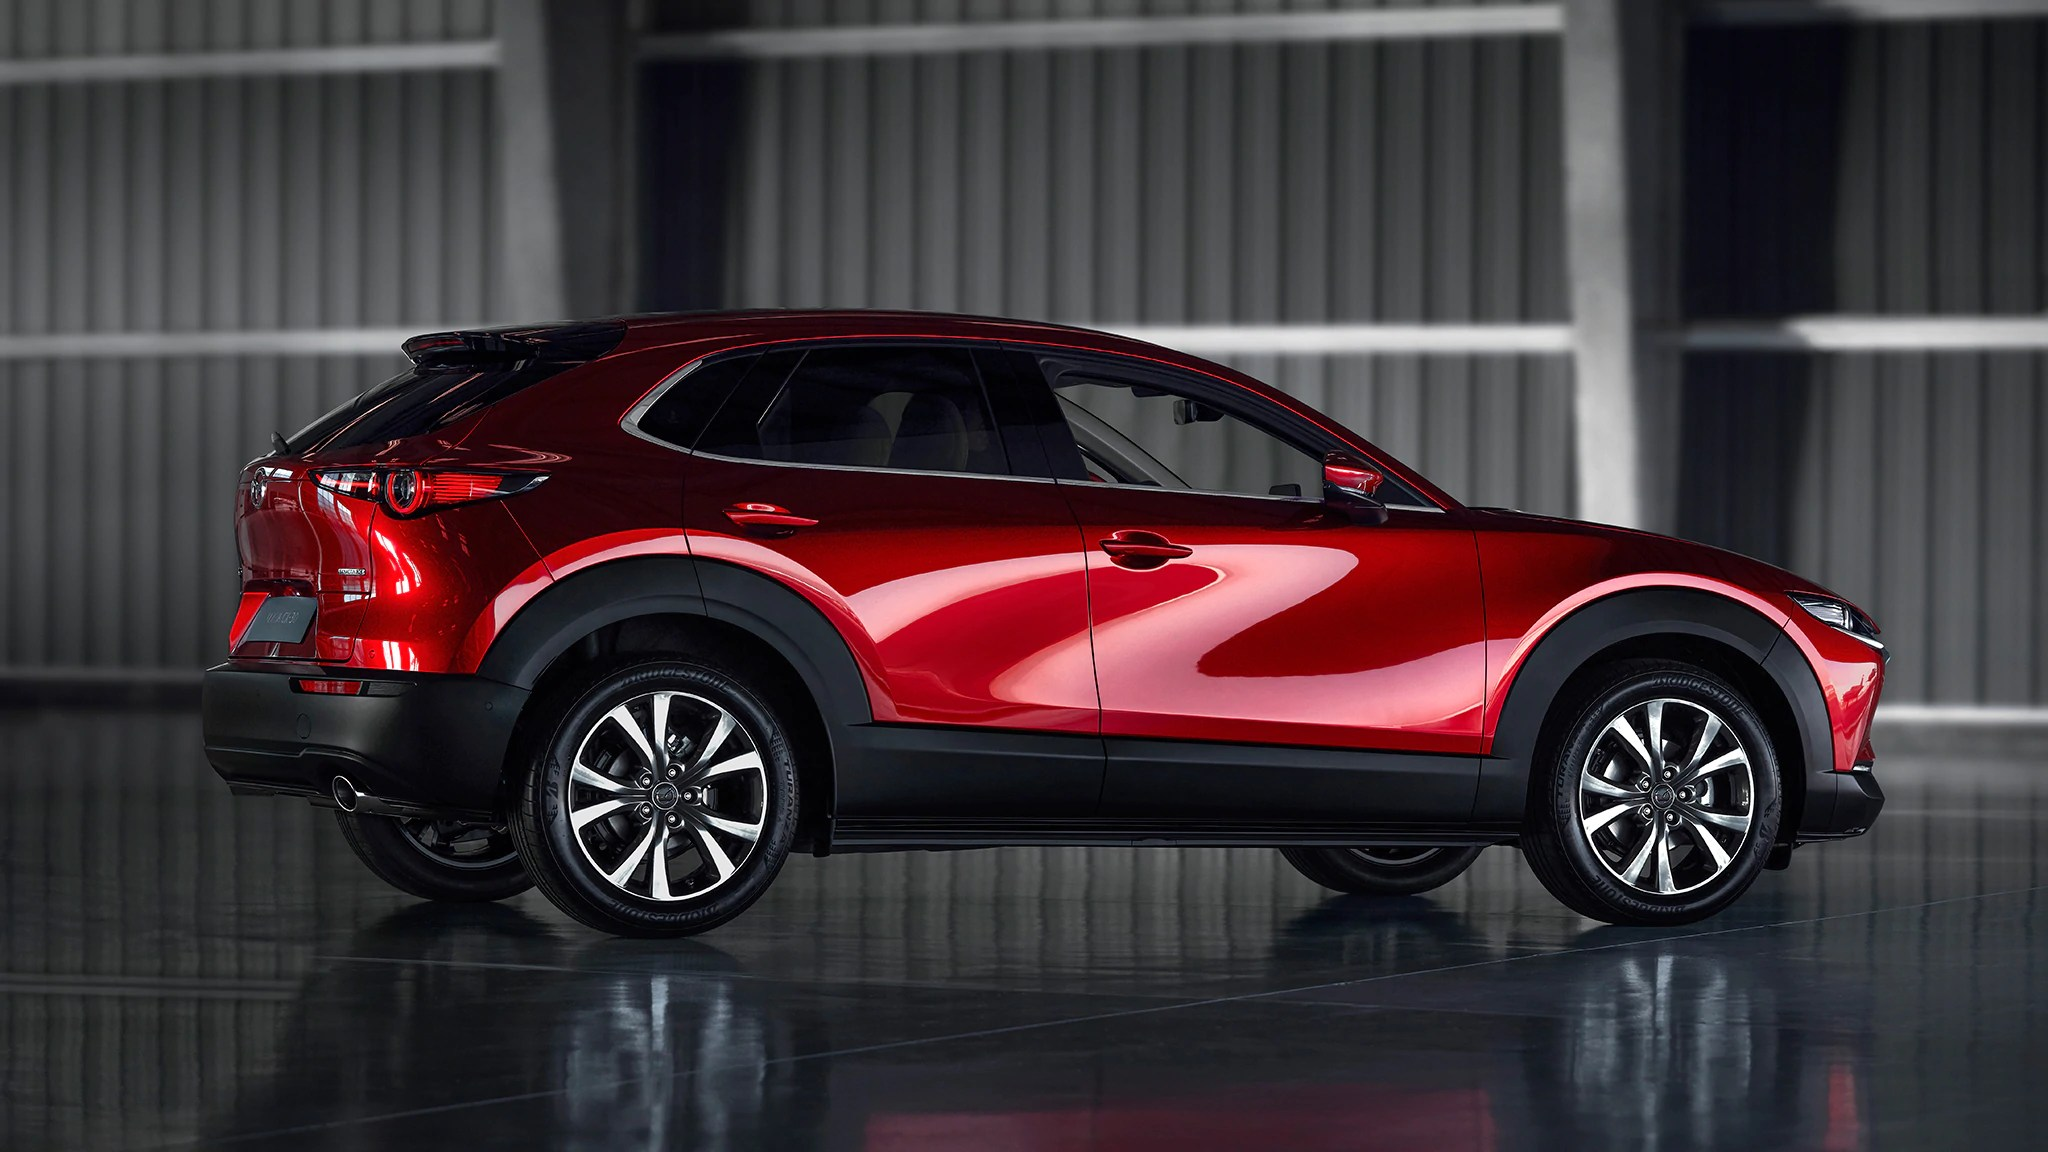 5 Mazda CX-5 Will Slot Between CX-5 and CX-5 - Phoneweek